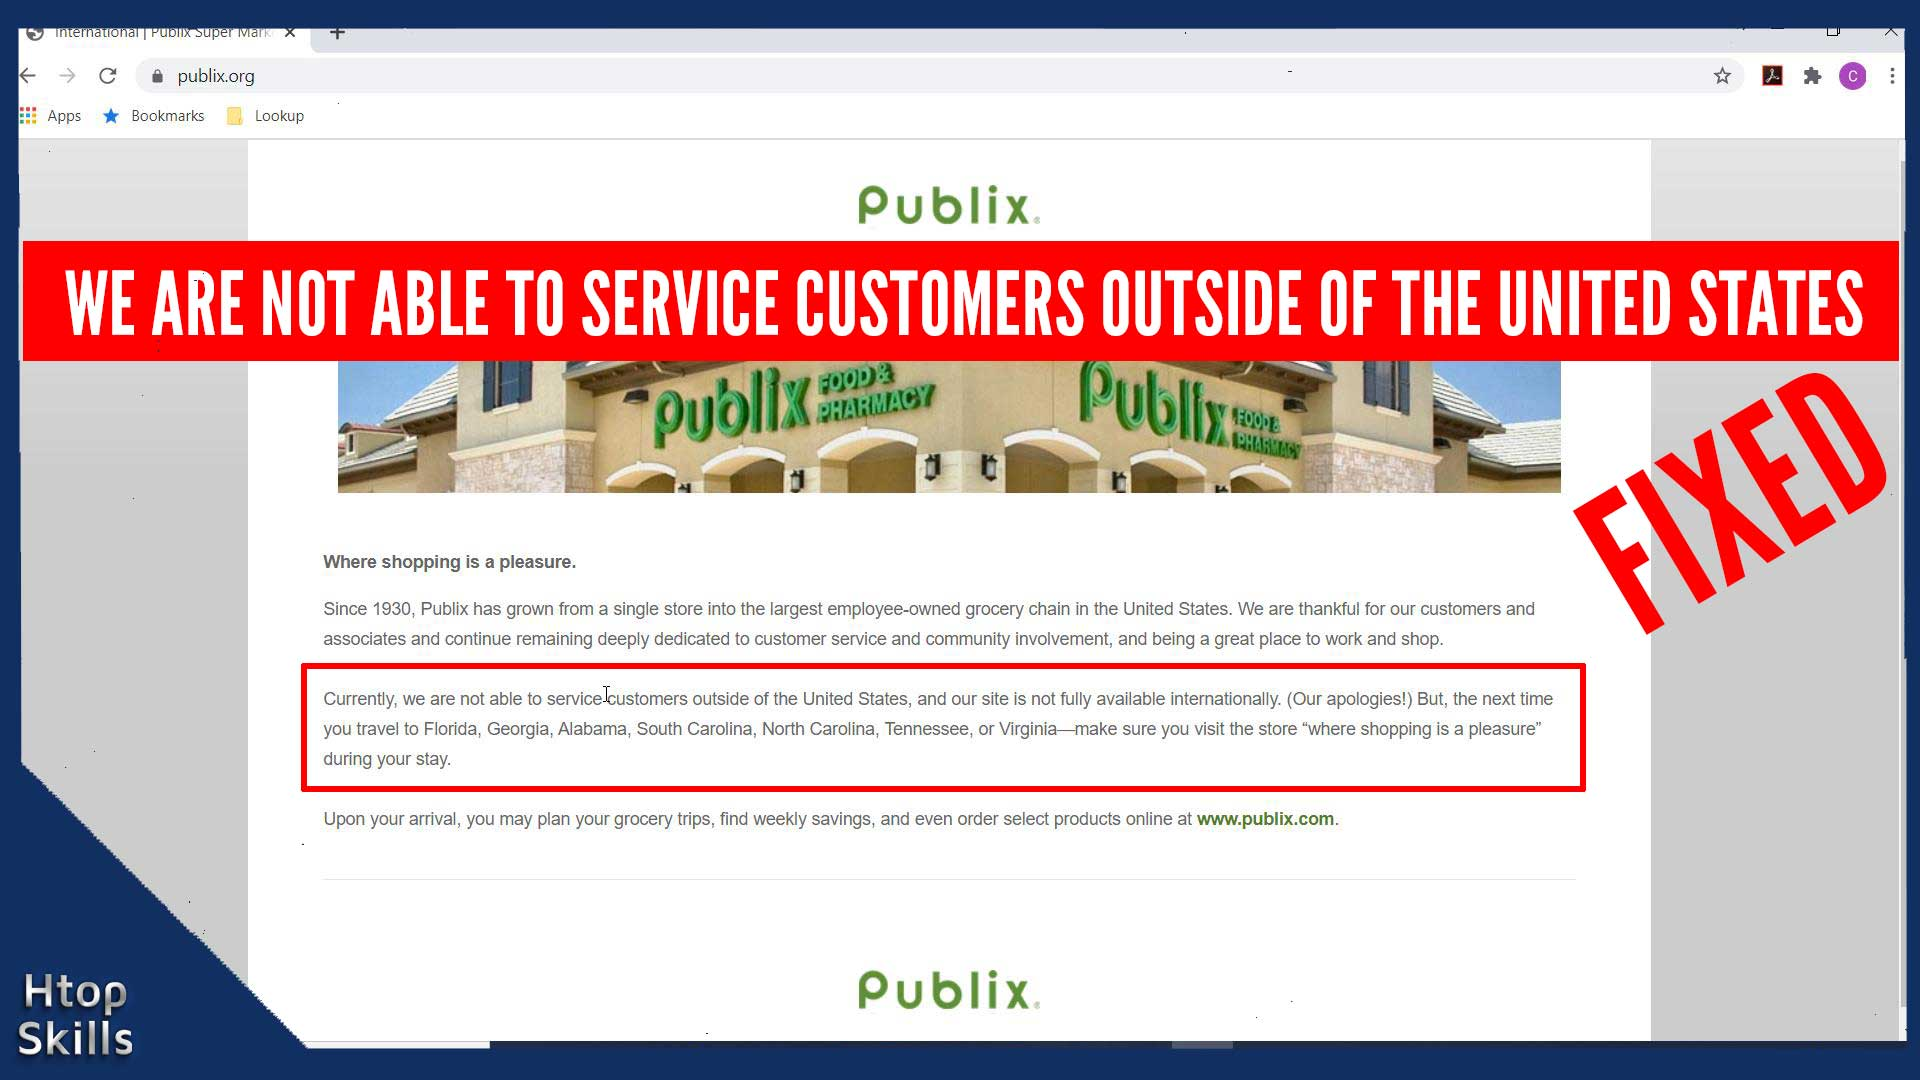 We are not able to service customers outside of the United States